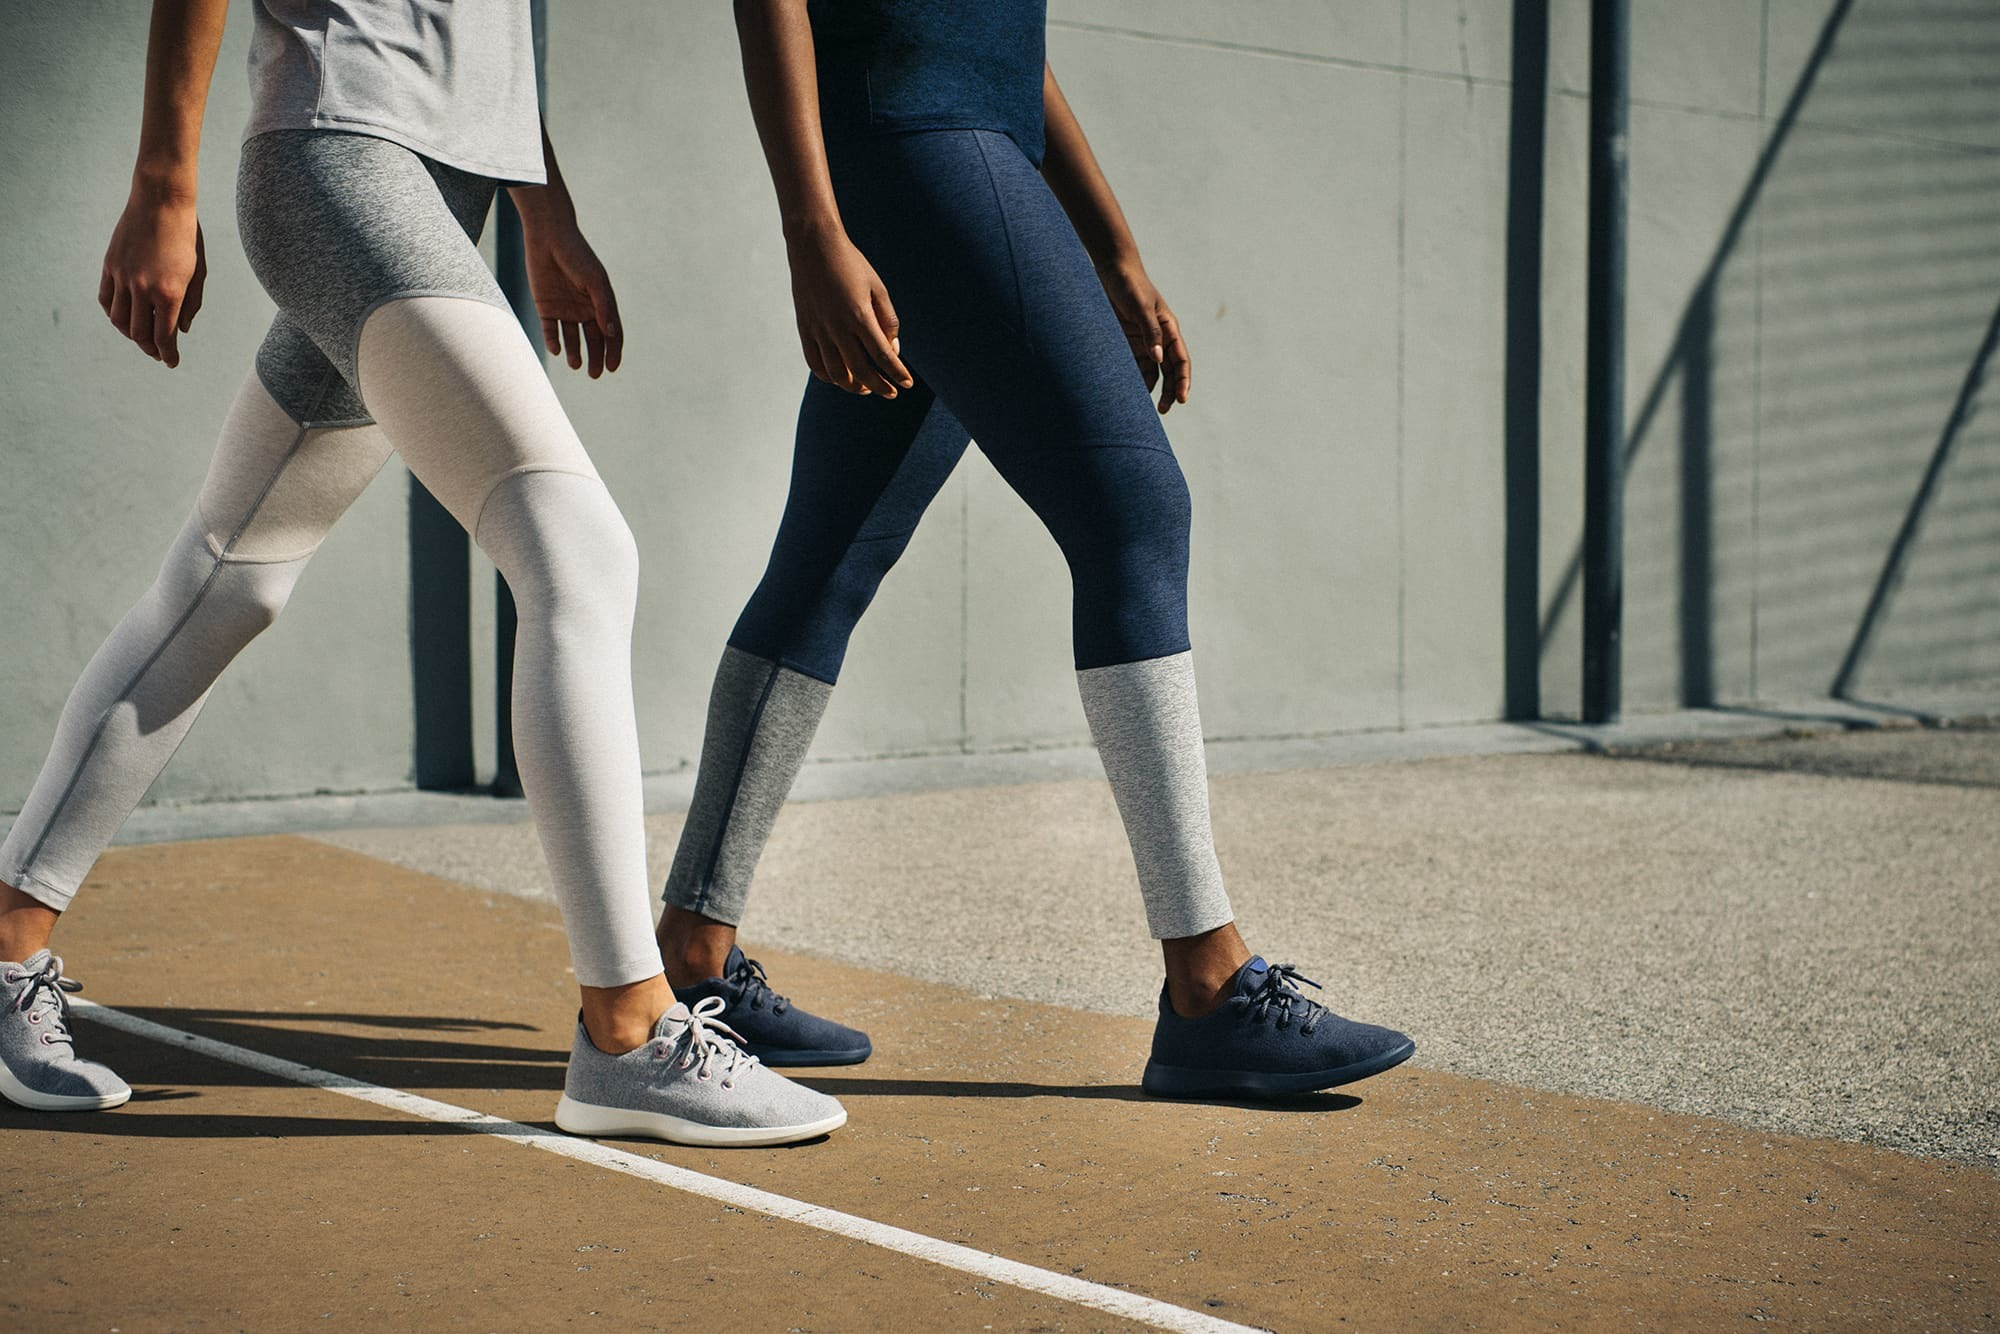 7ad30ed33 New Zealand shoe brand Allbirds has been on a tour de force for the last  two years. Early bird adopters in Silicon Valley quickly catapulted the  brand to ...